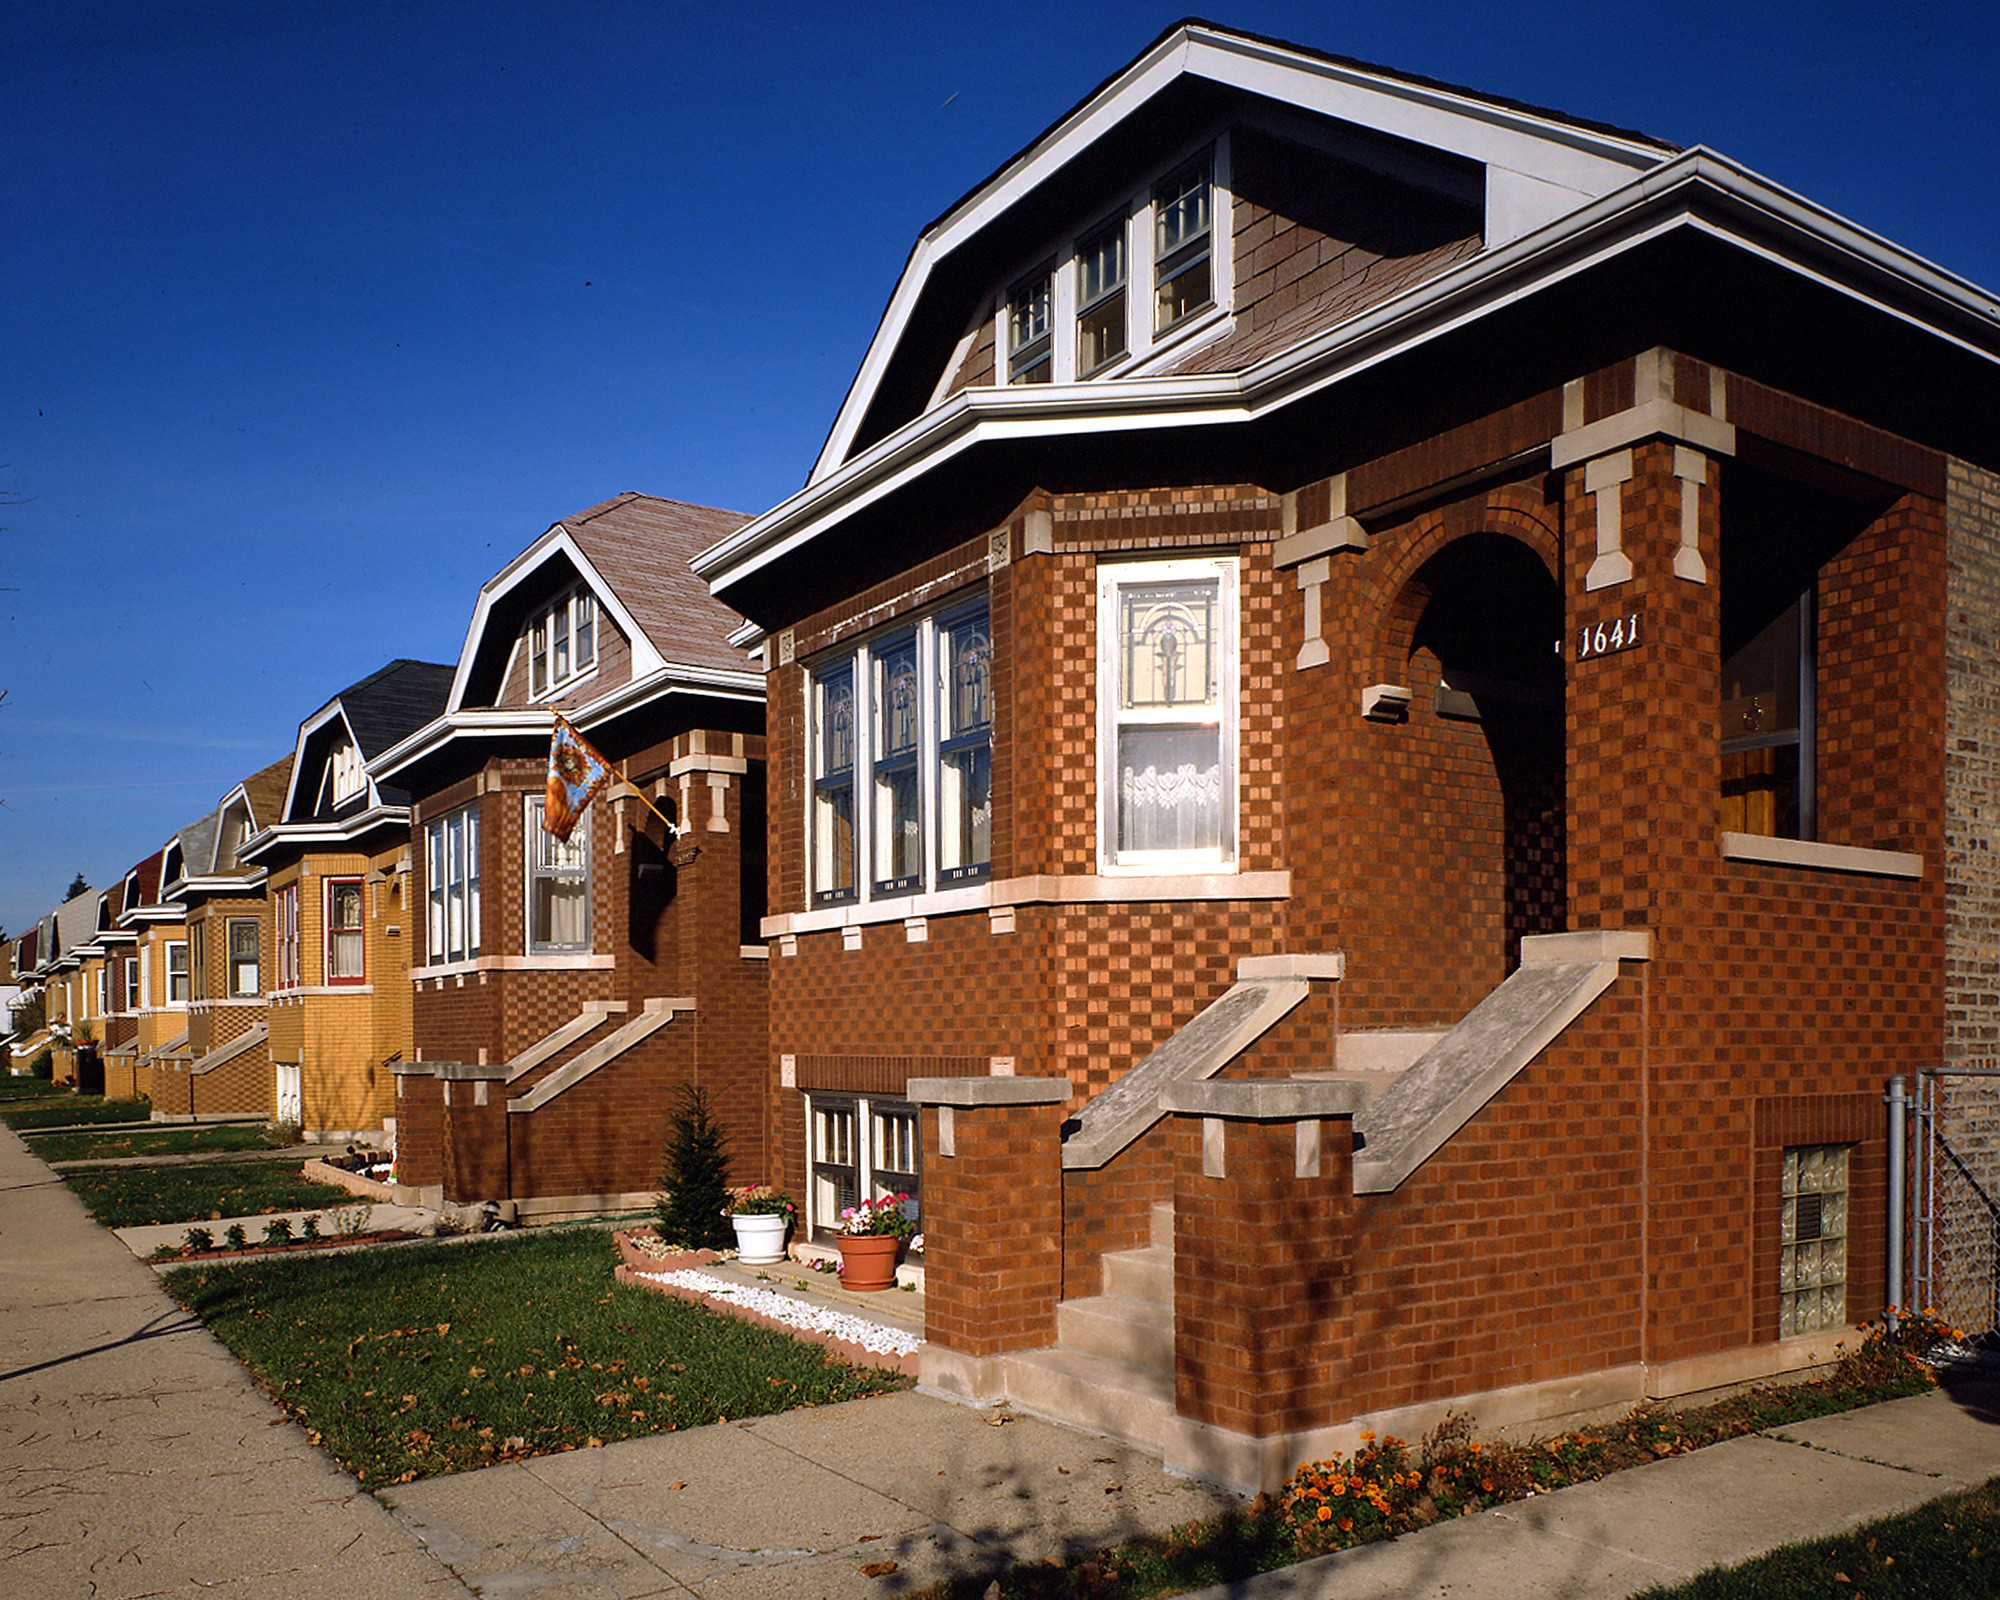 between world war i and the great depression more than 80000 bungalows were built in chicago these one and a half story homeswith detailed masonry and - Bungalow